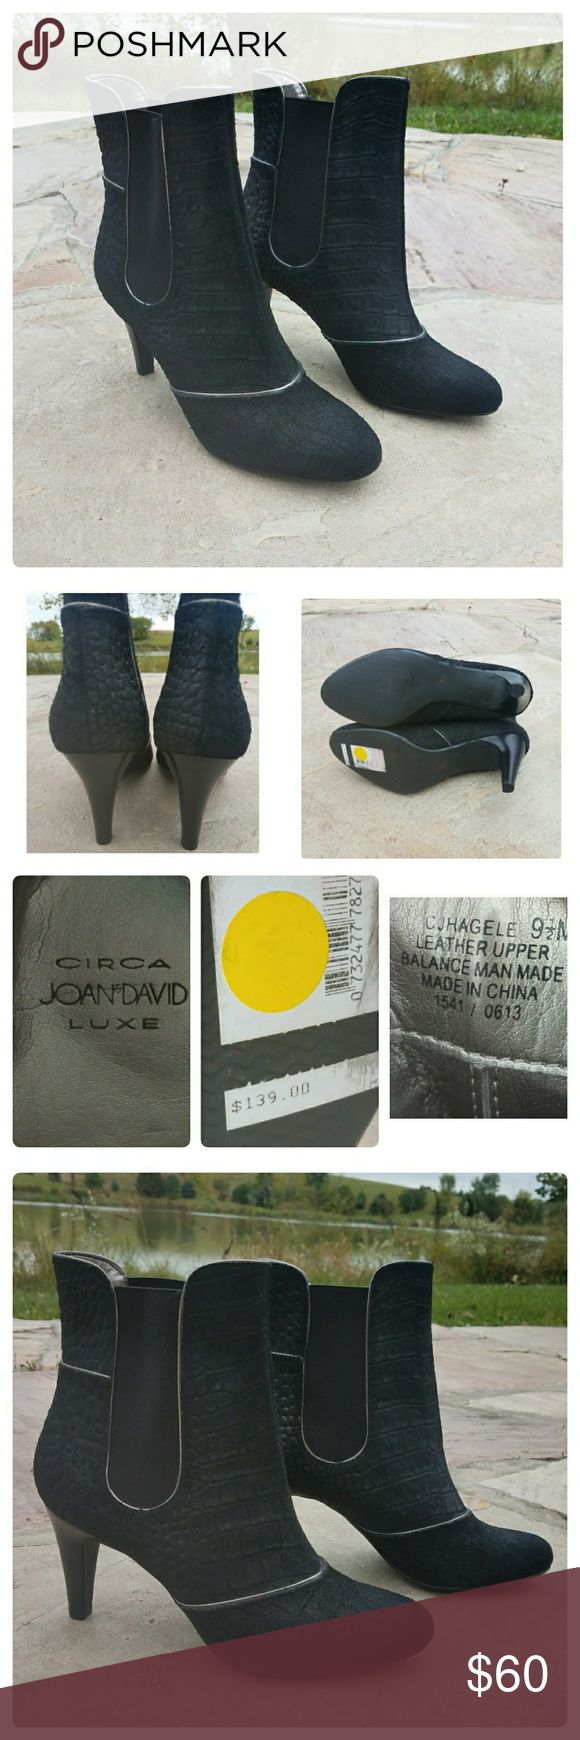 """Circa Joan David Luxe Heeled Ankle Boots New with tags. Black with silver piping detail. Croc embossed.  Heel approximately 3"""". Boot shaft 6"""". Opening circumference 11"""". Joan & David Shoes Ankle Boots & Booties"""